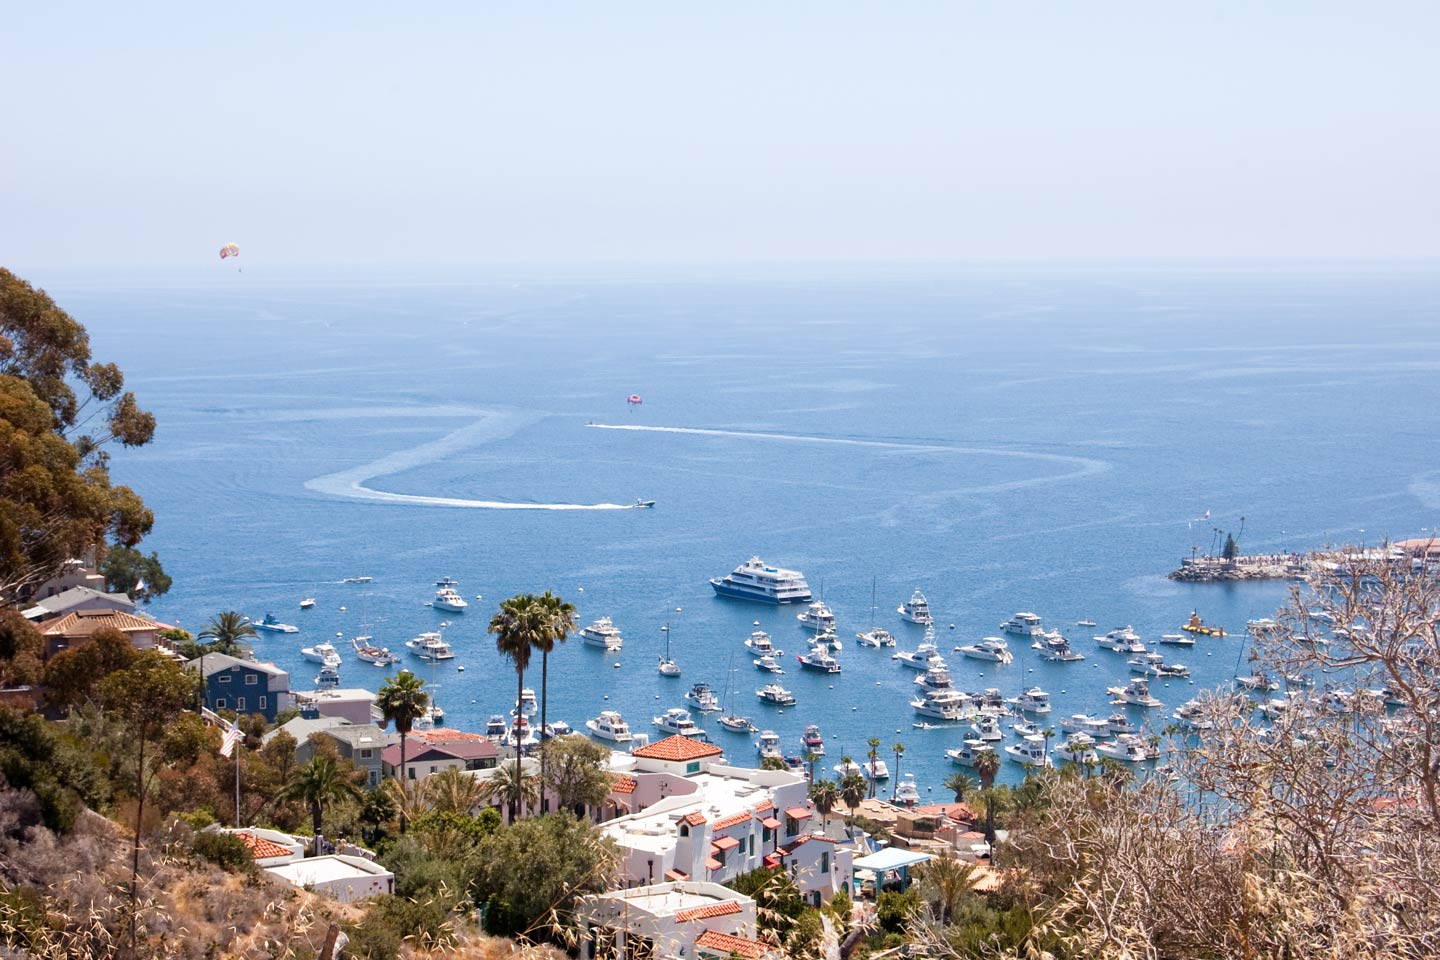 An aerial view of Avalon Harbor, where most of Catalina's charter fleet docks.